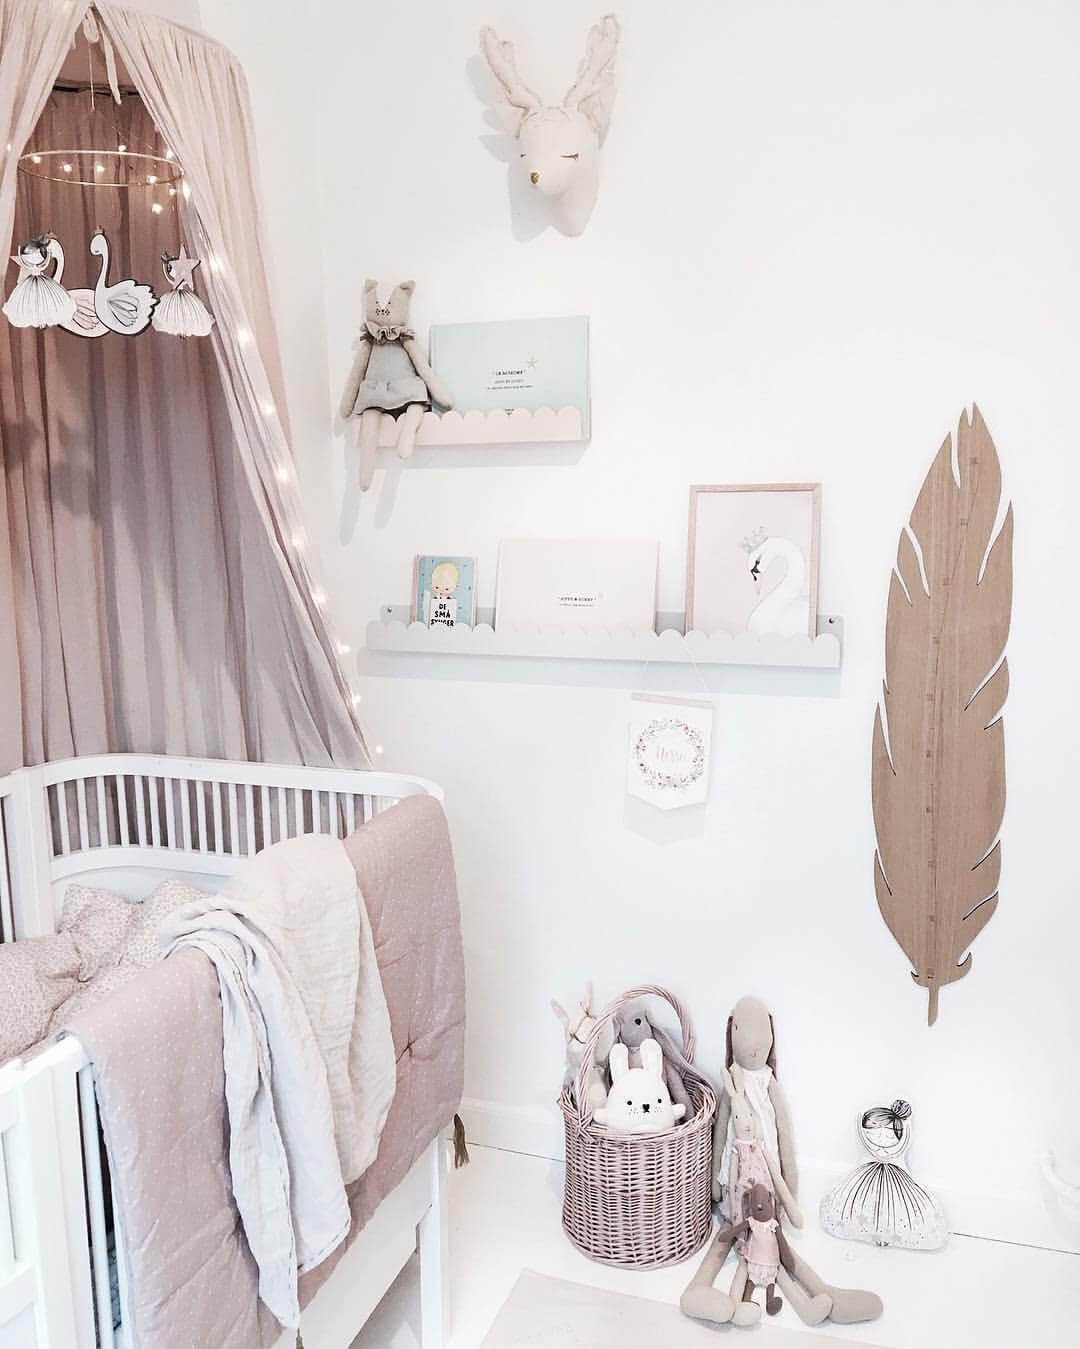 Soft Pinks and Eclectic Art For Nursery Whimsy